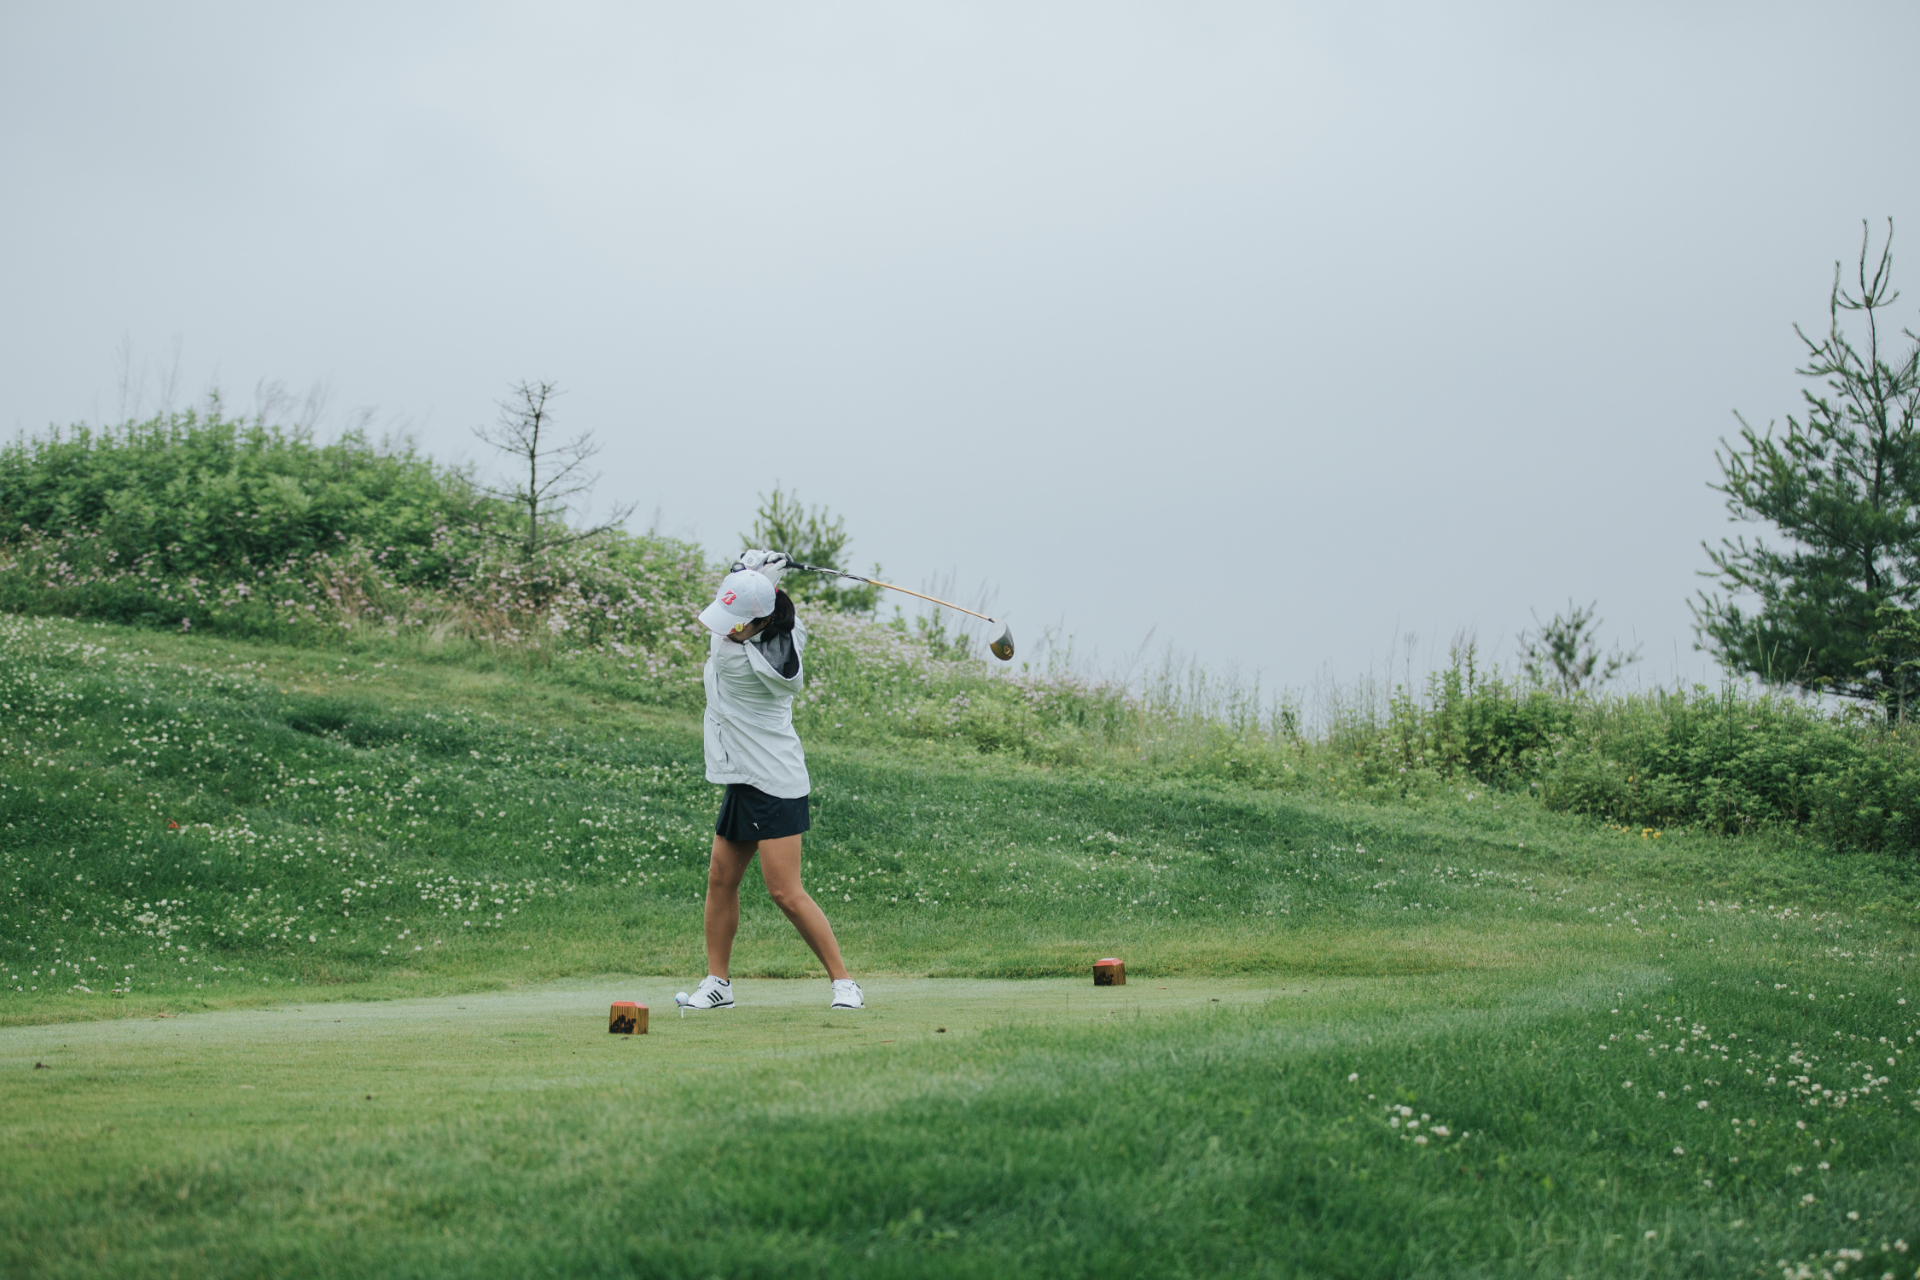 https://nykbi.com/new/wp-content/uploads/2019/07/190619-Scholarship-Fundraising-Golf-Tournament-020.jpg